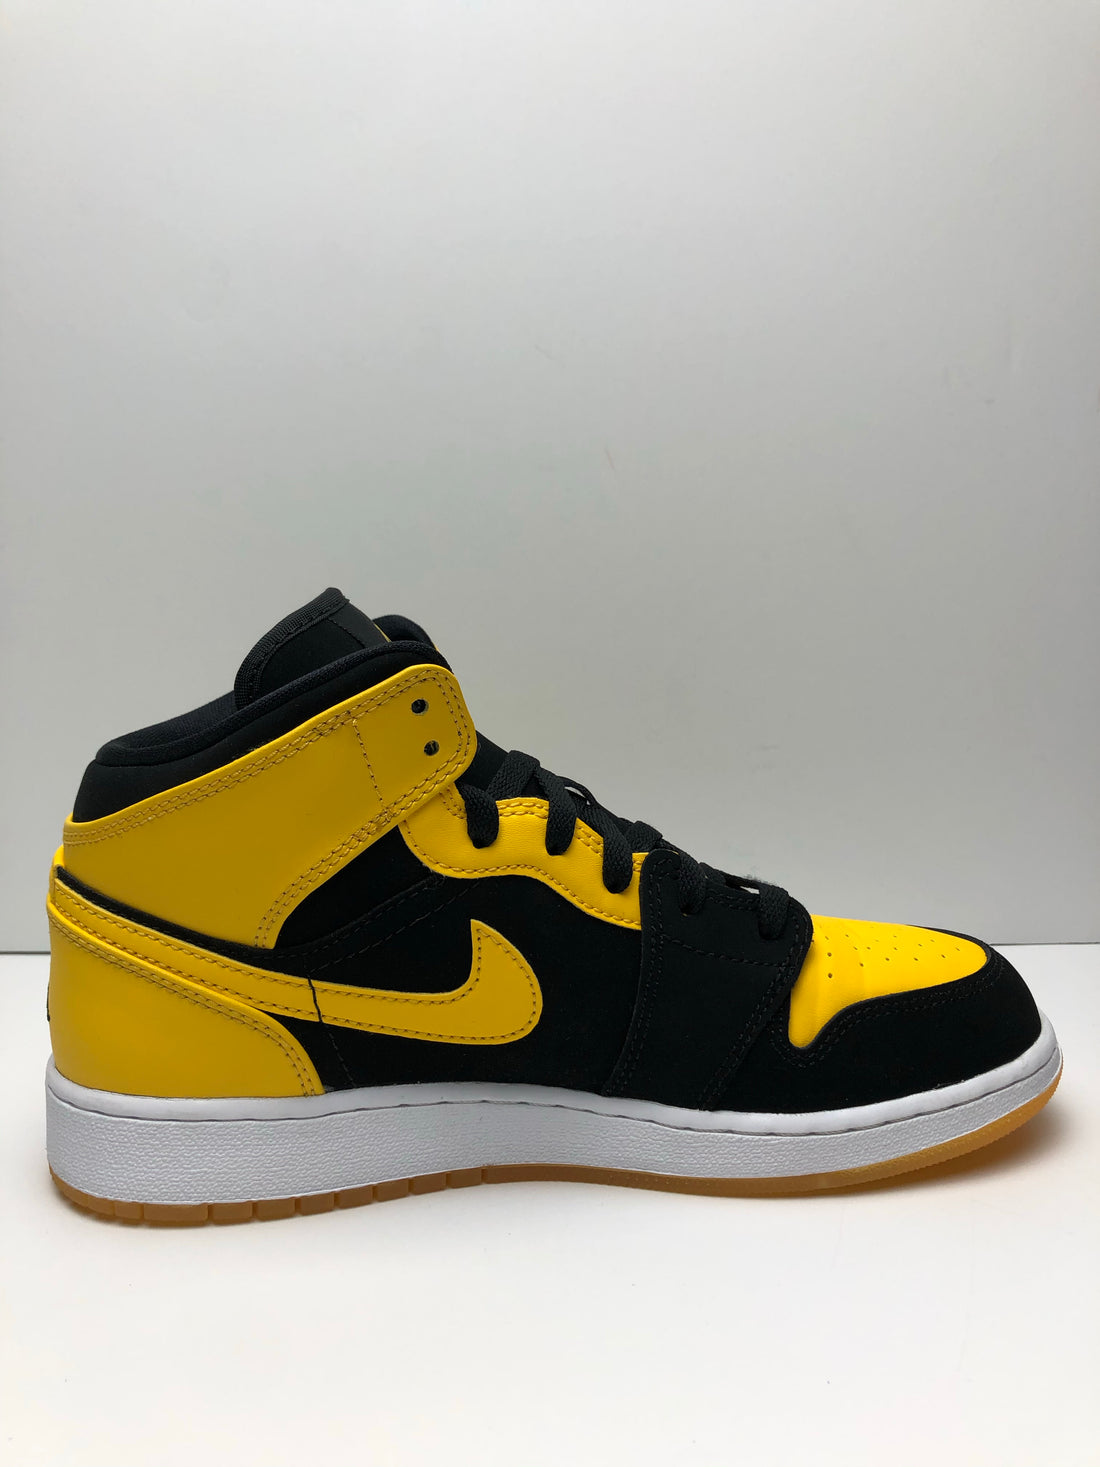 Jordan 1 Retro Mid New Love 2017 (GS)